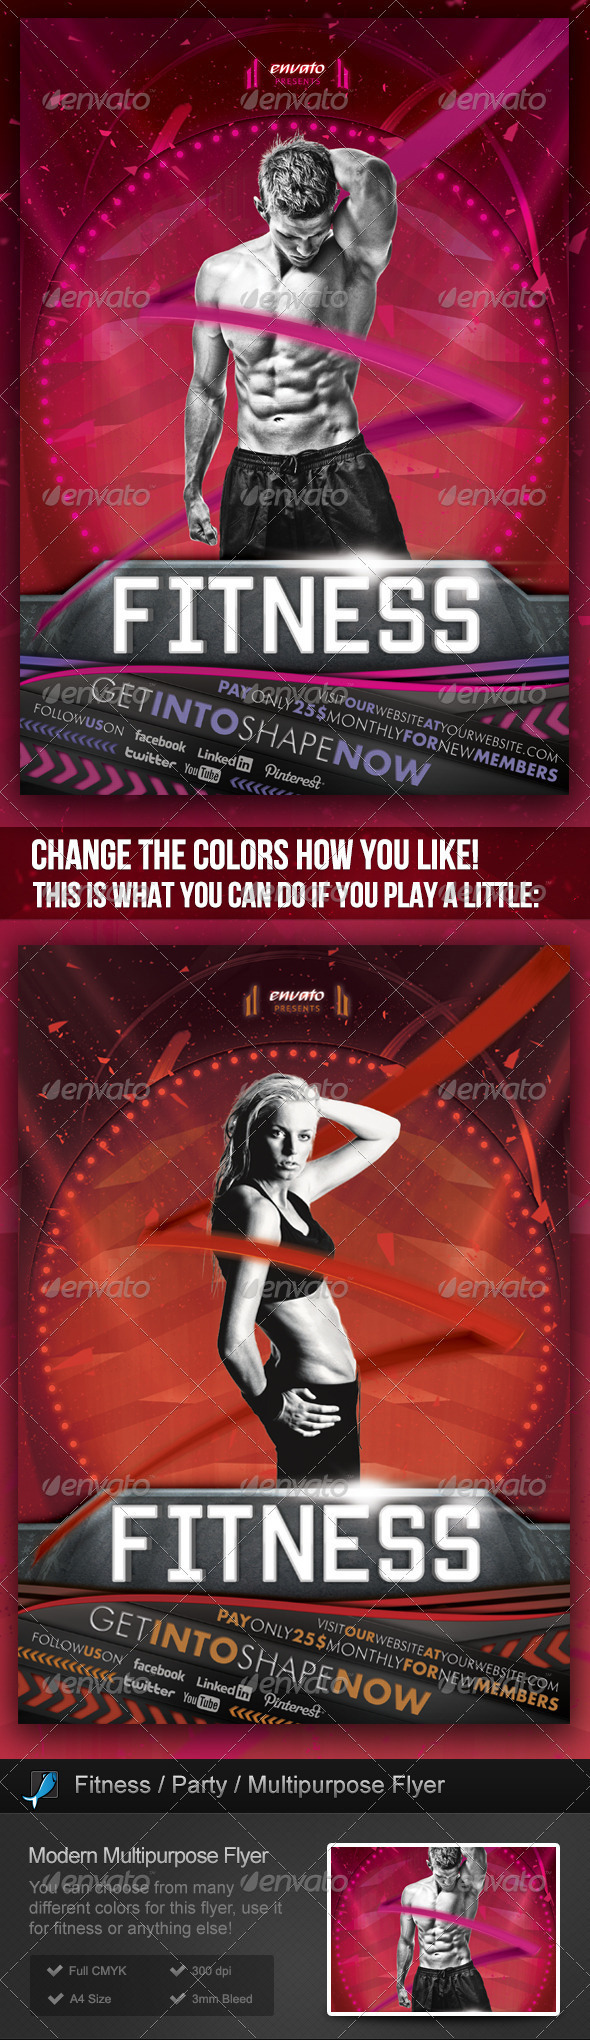 Fitness / Gym / Party / Event Multipurpose Flyer - Sports Events